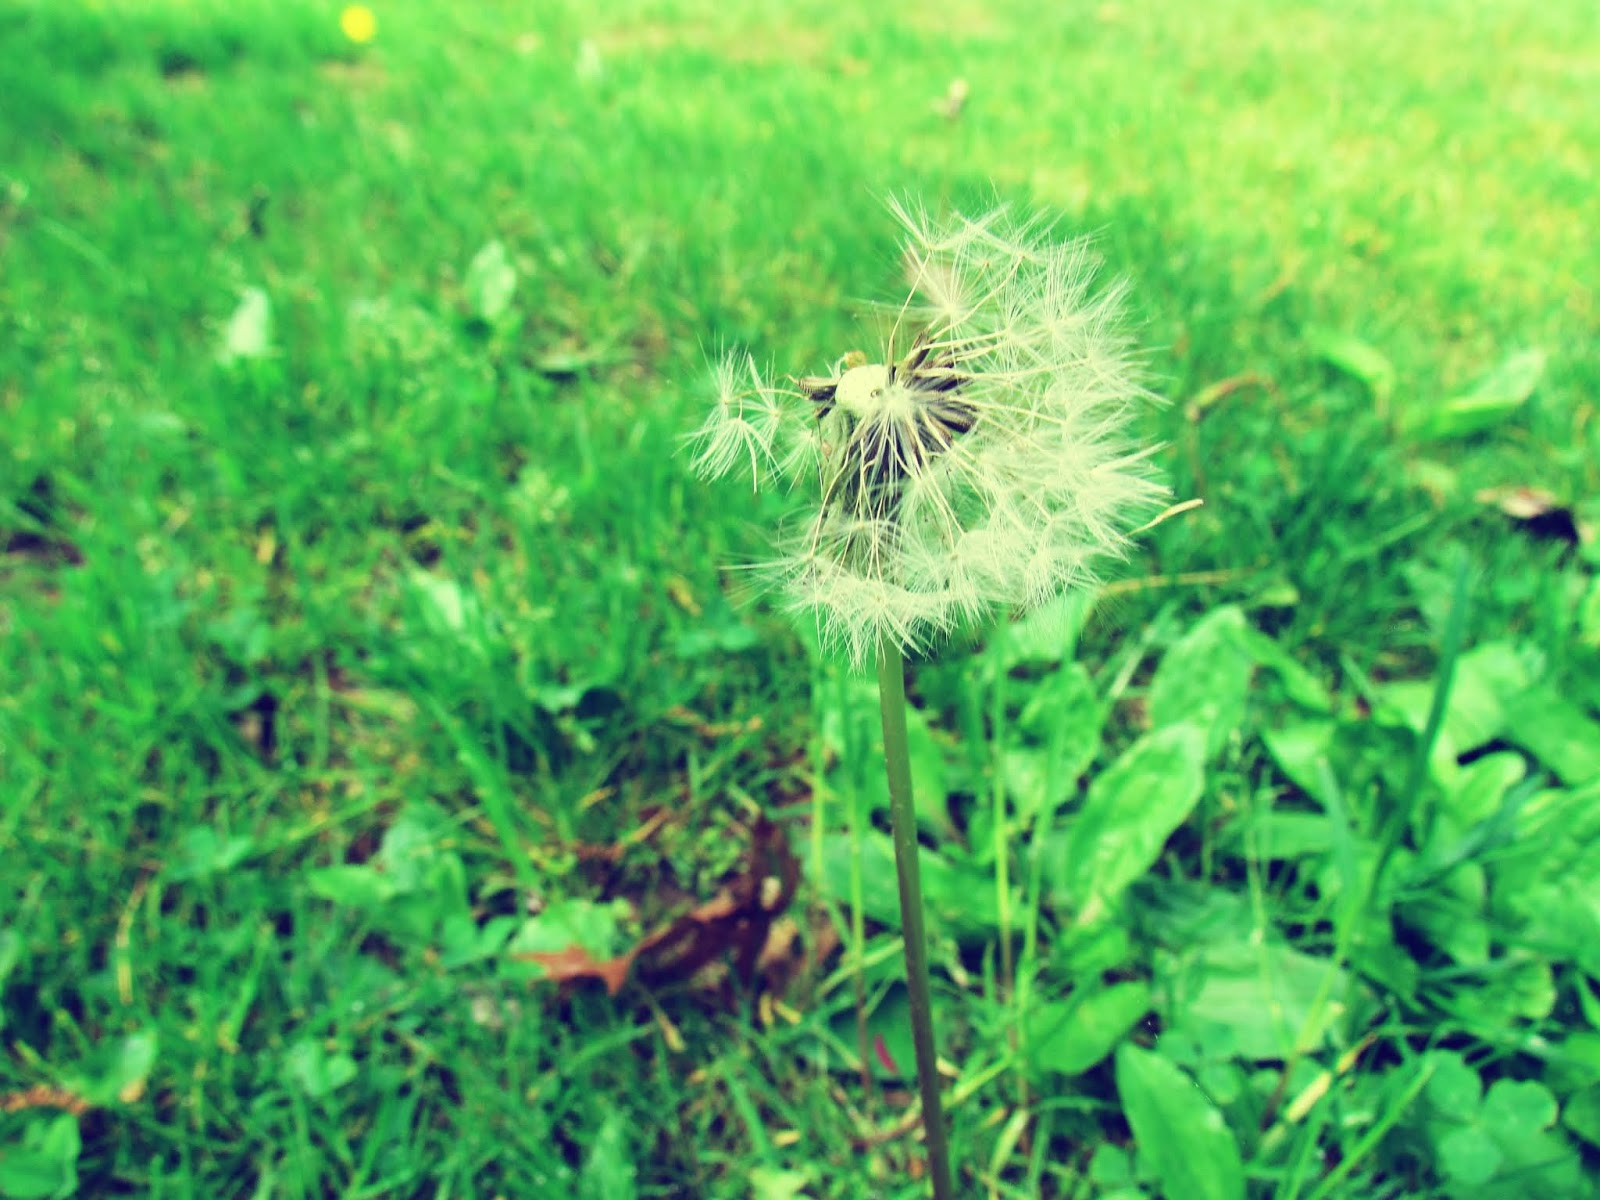 Green Tall Grass of New England in Summer + Wishing on a Dandelion and Blowing Dandelion Seeds